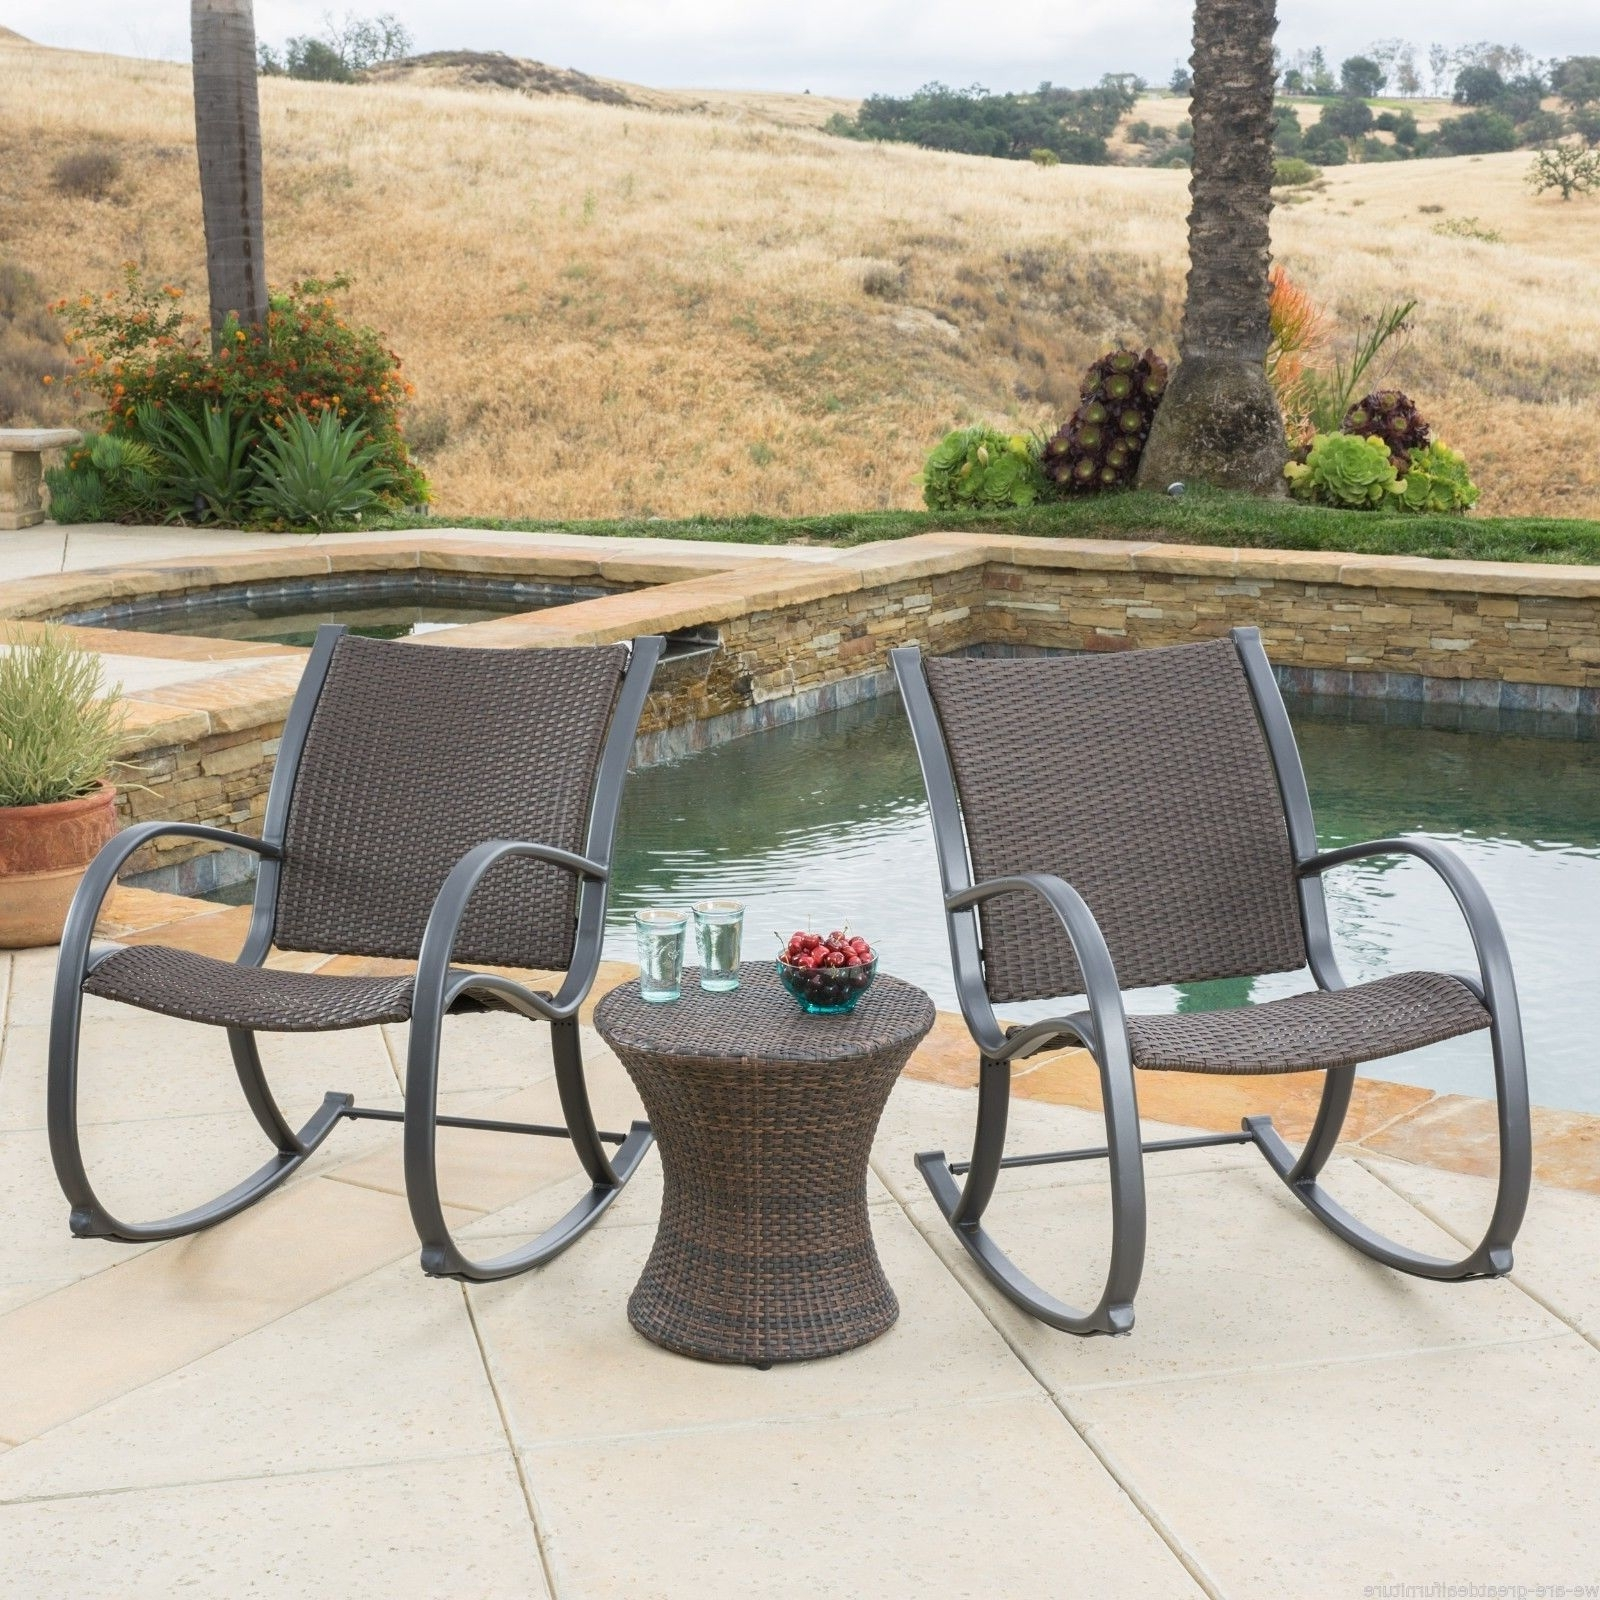 Brown Patio Rocking Chairs Inside Well Known Outdoor Patio Furniture 3pc Brown Wicker Rocking Chair Hourglass (View 19 of 20)